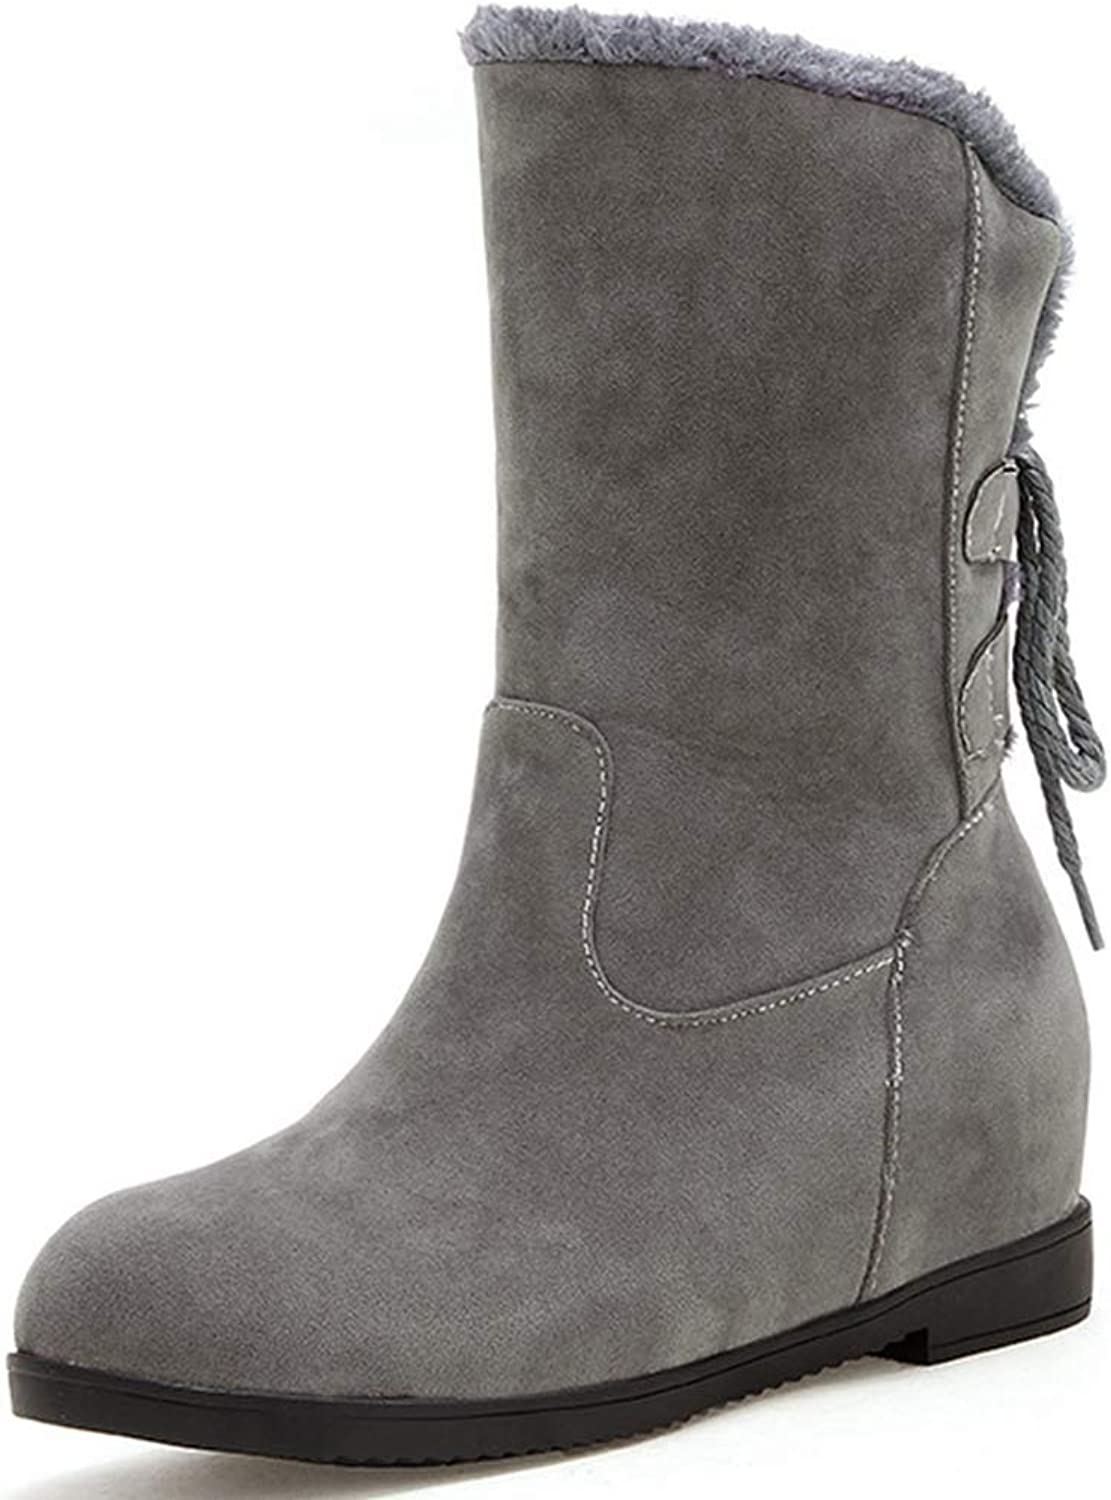 Sam Carle Women Boots, Winter Fashion Solid color Back Lace Up Round Toe Mid-Calf Boots